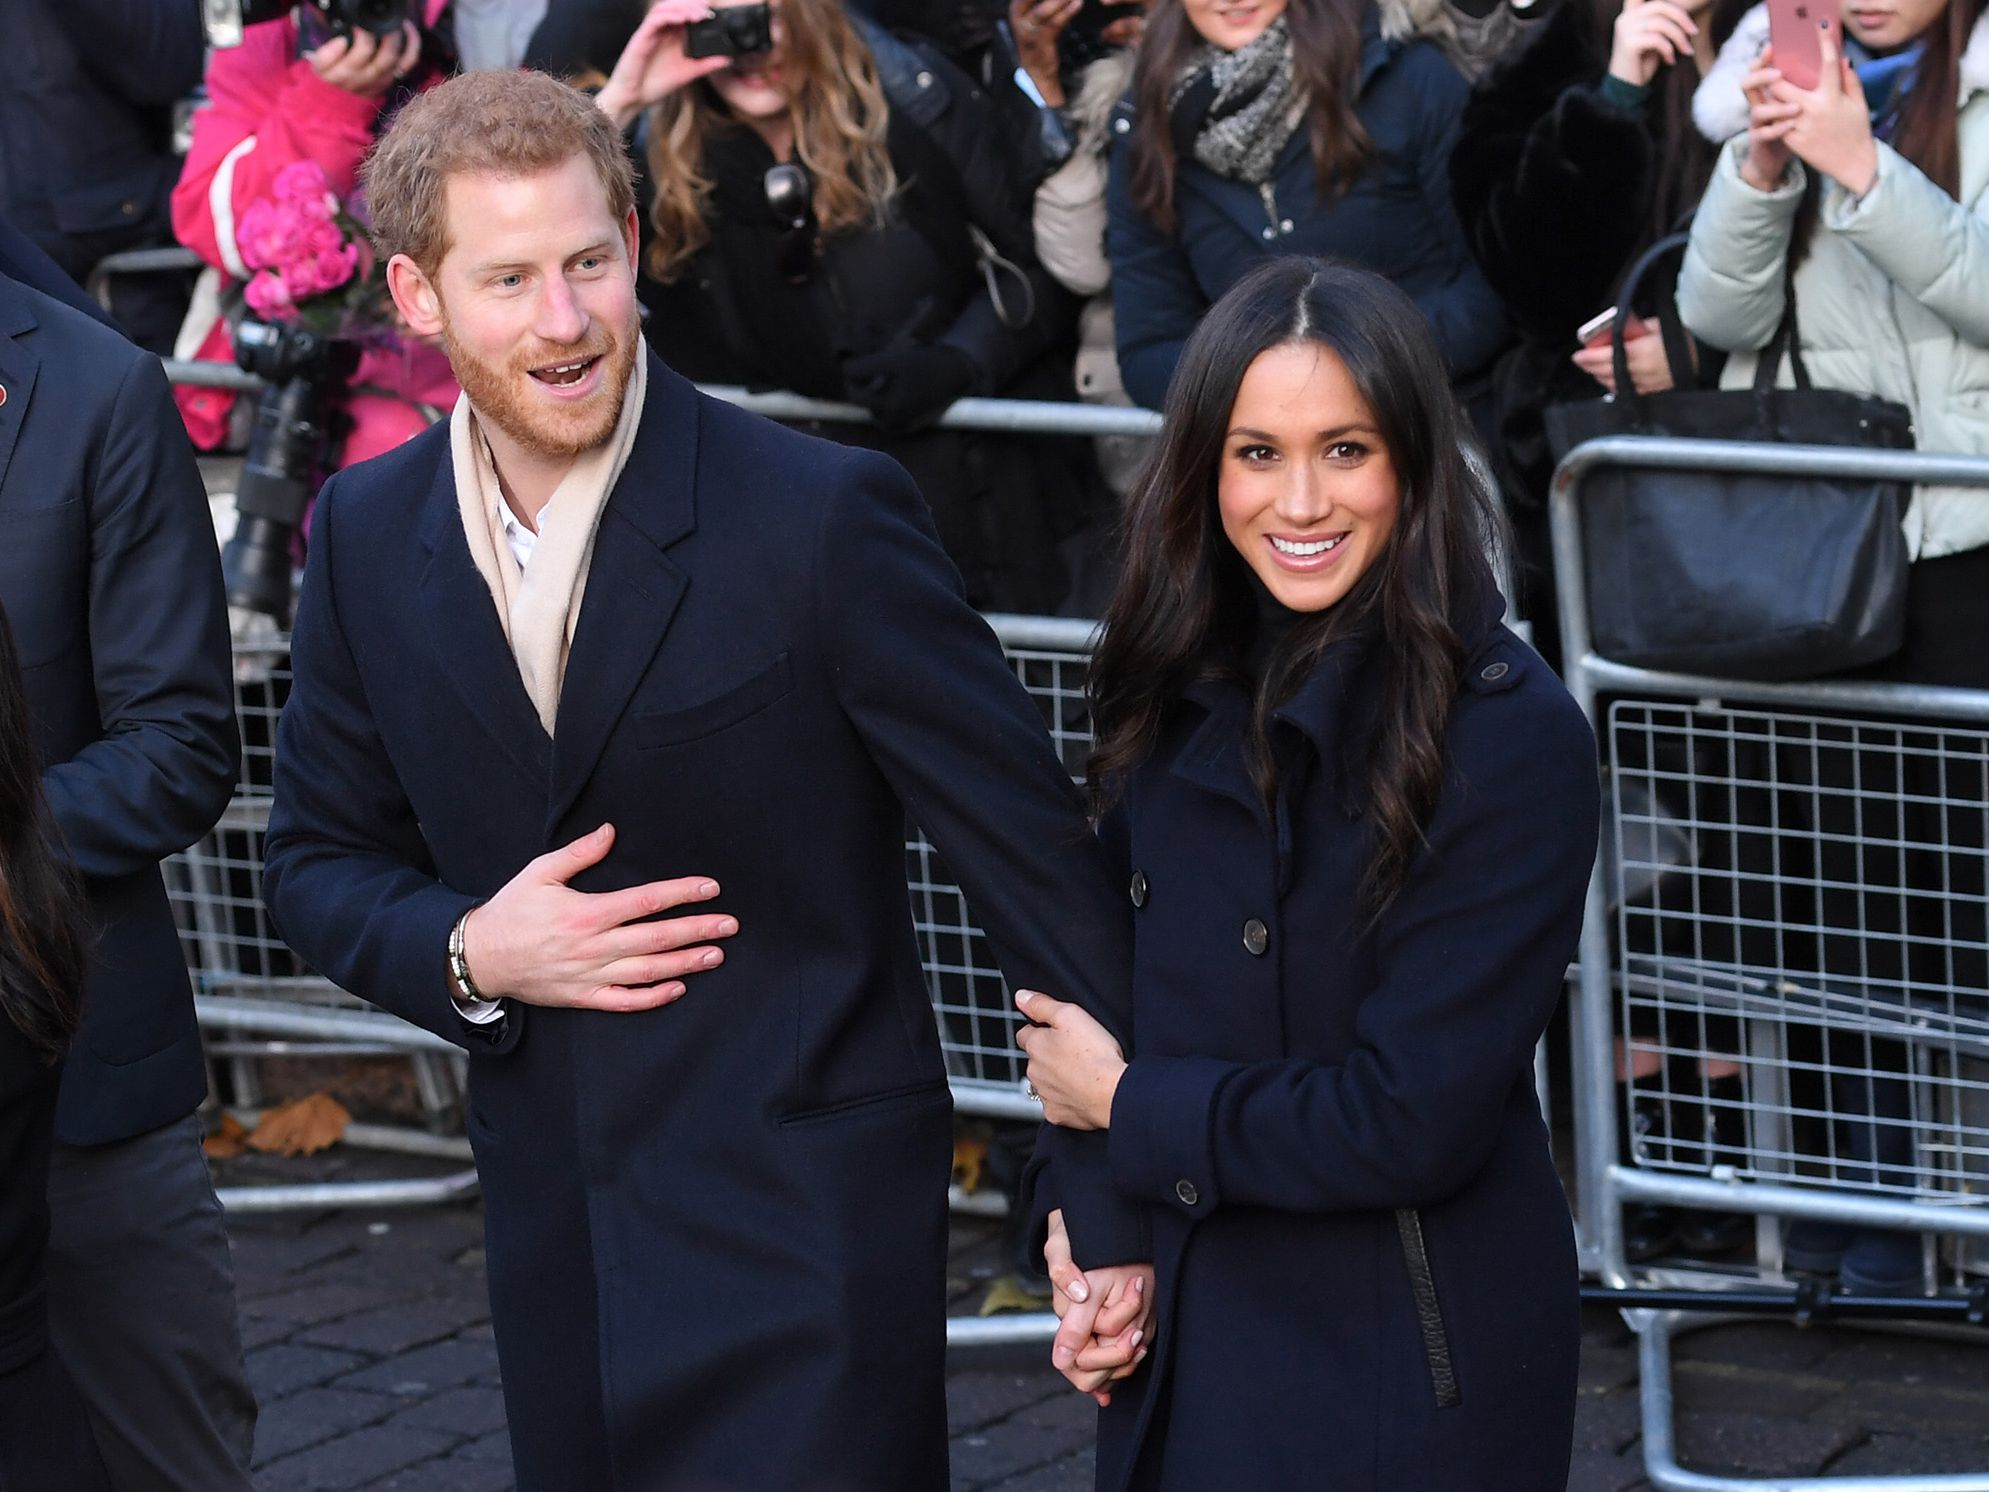 Prince Harry and Meghan Markle's Royal Wedding Guest List! 31